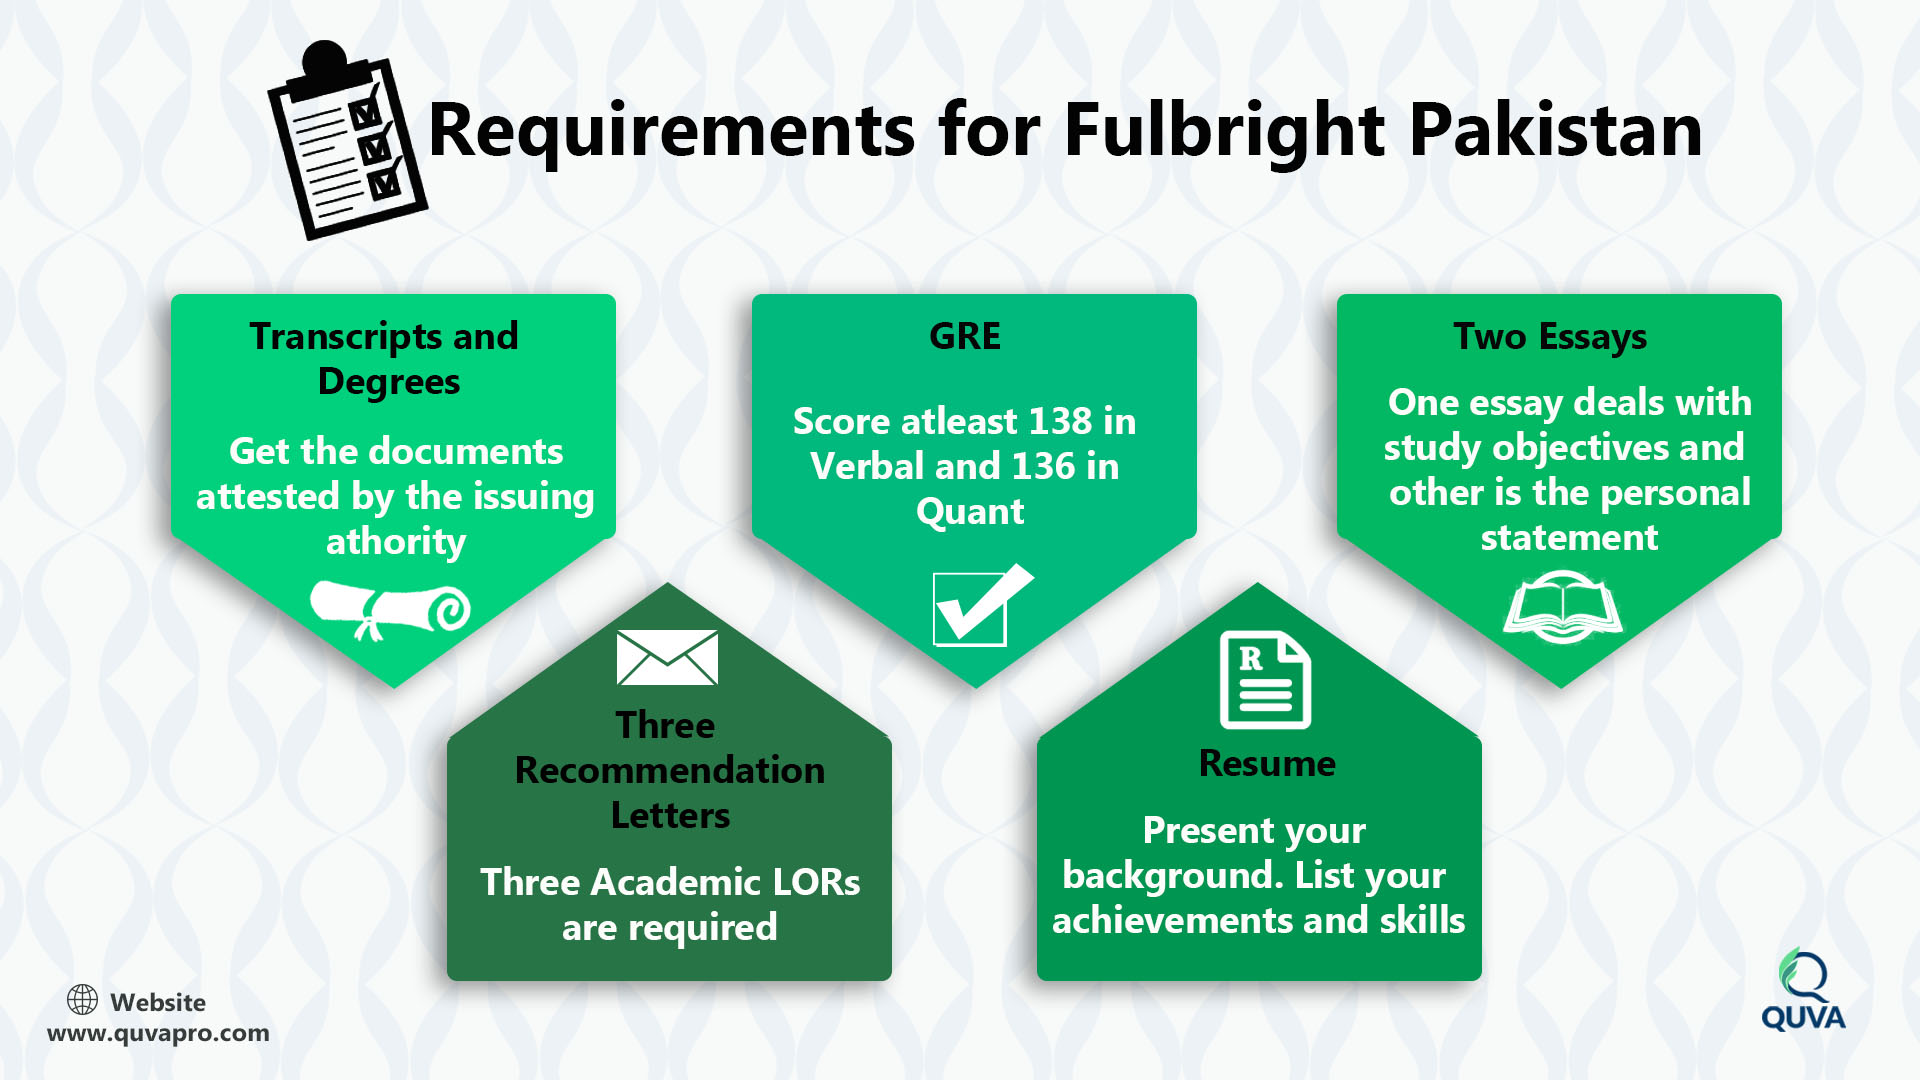 Requirements-for-fulbright-pakistan